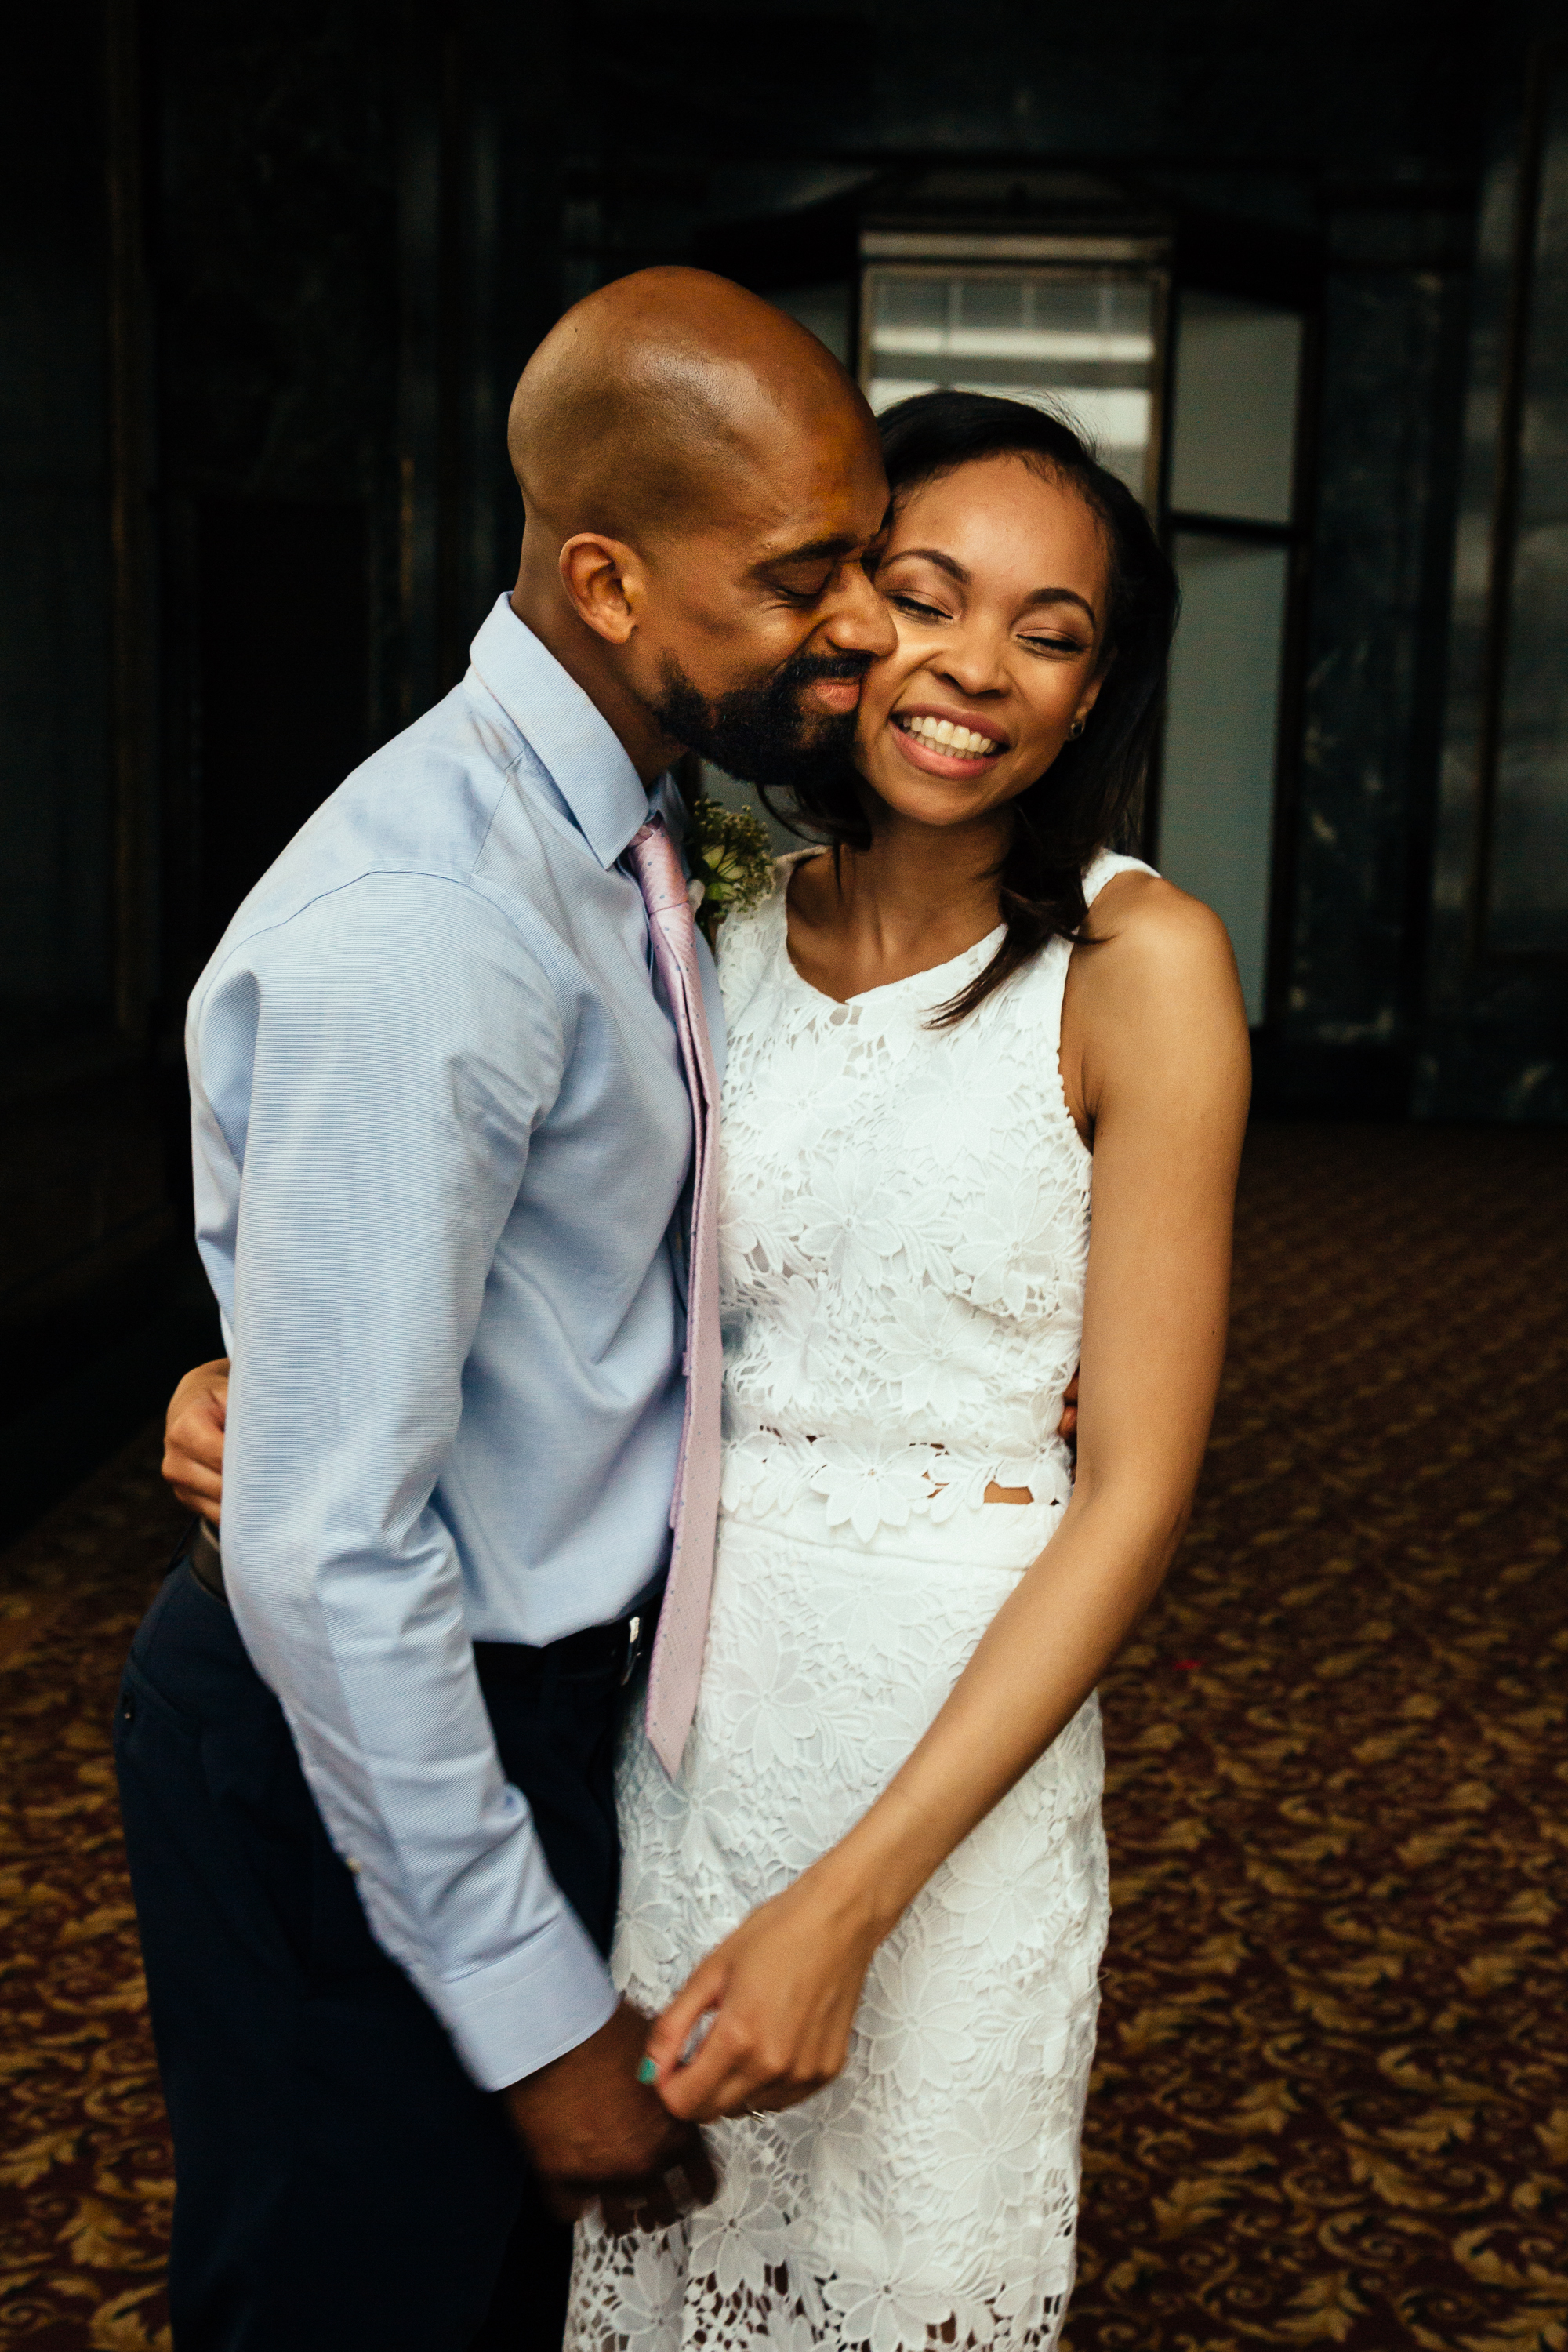 chicago_elopement_tony_brittany-18.jpg